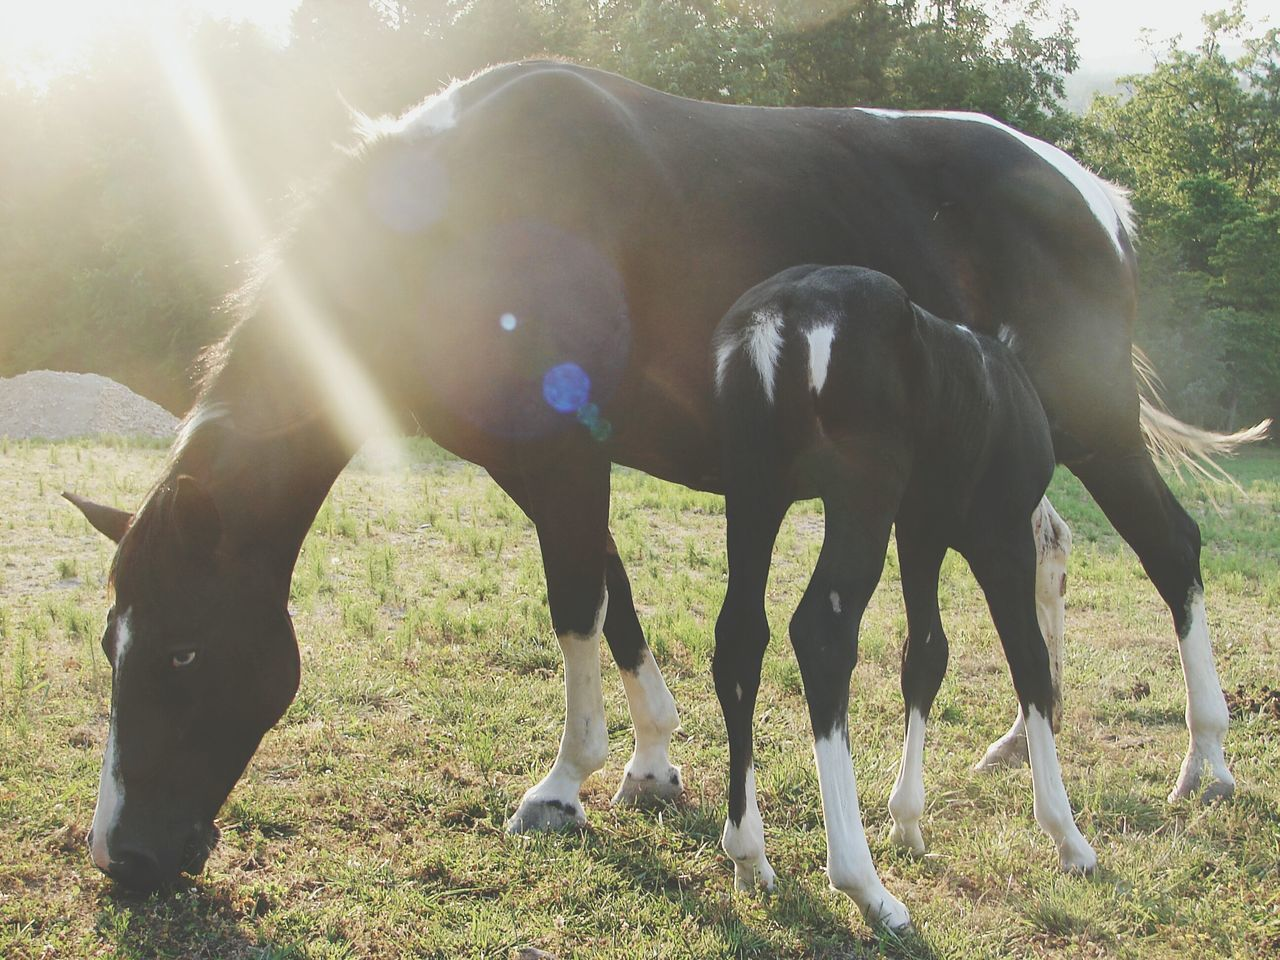 Black Horse Feeding Foal On Grassy Field During Sunny Day